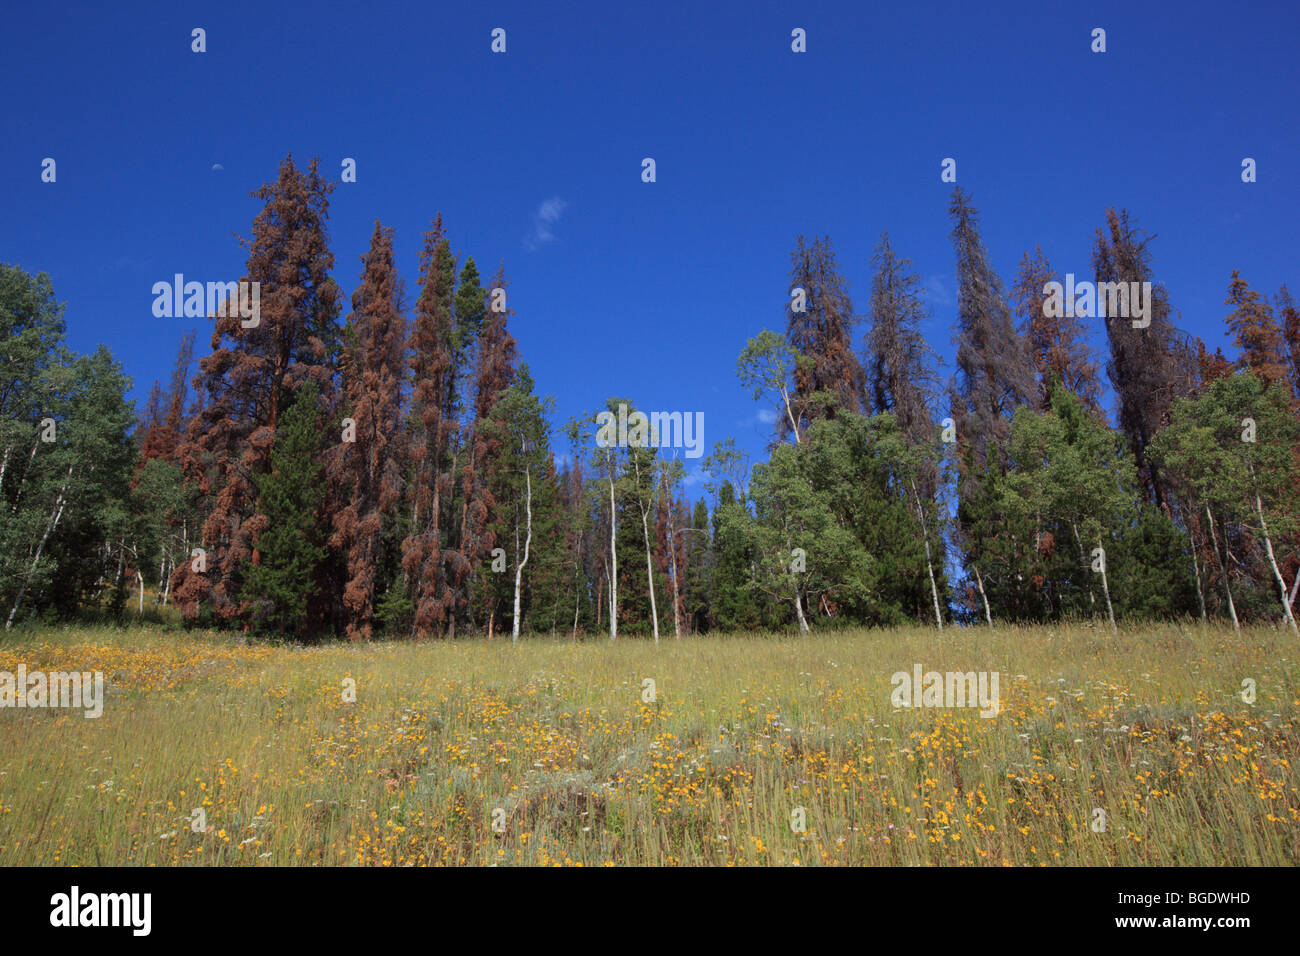 Colorado forest showing lodgepole pine trees killed by the mountain pine beetle - Stock Image